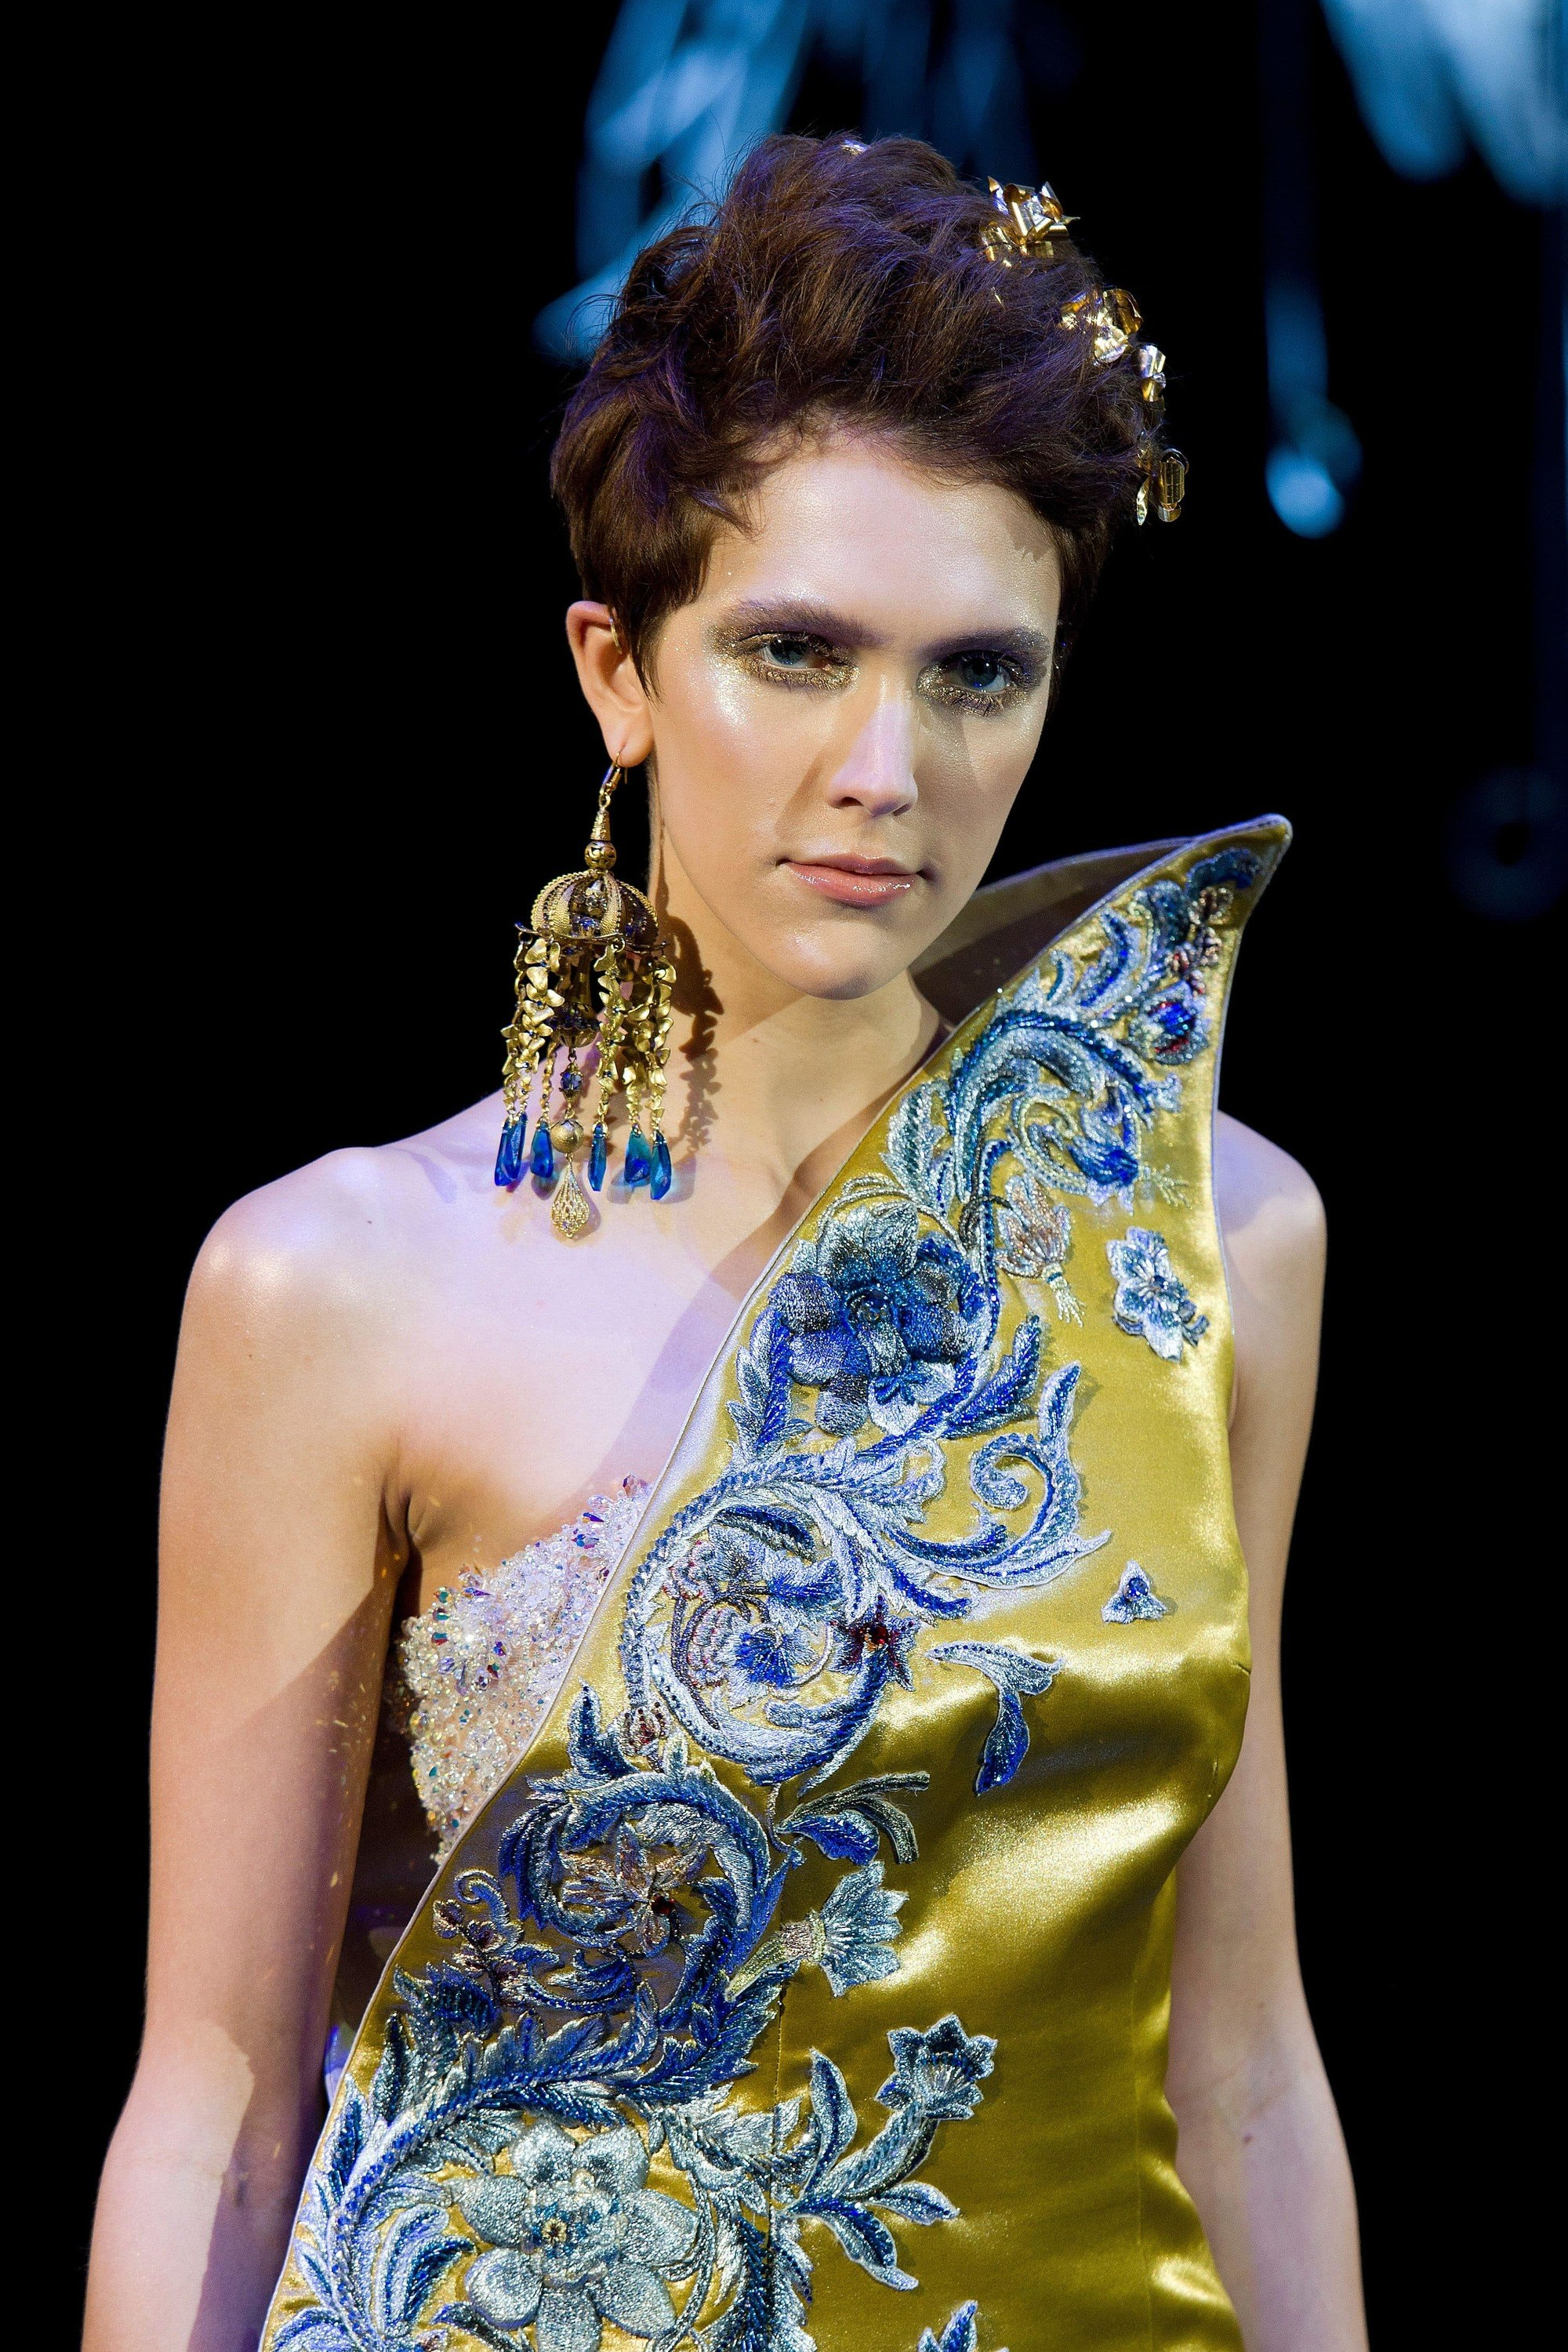 close up shot of model on the guo pei runway with golden hair accessories in her mane, wearing satin dress and statement earrings